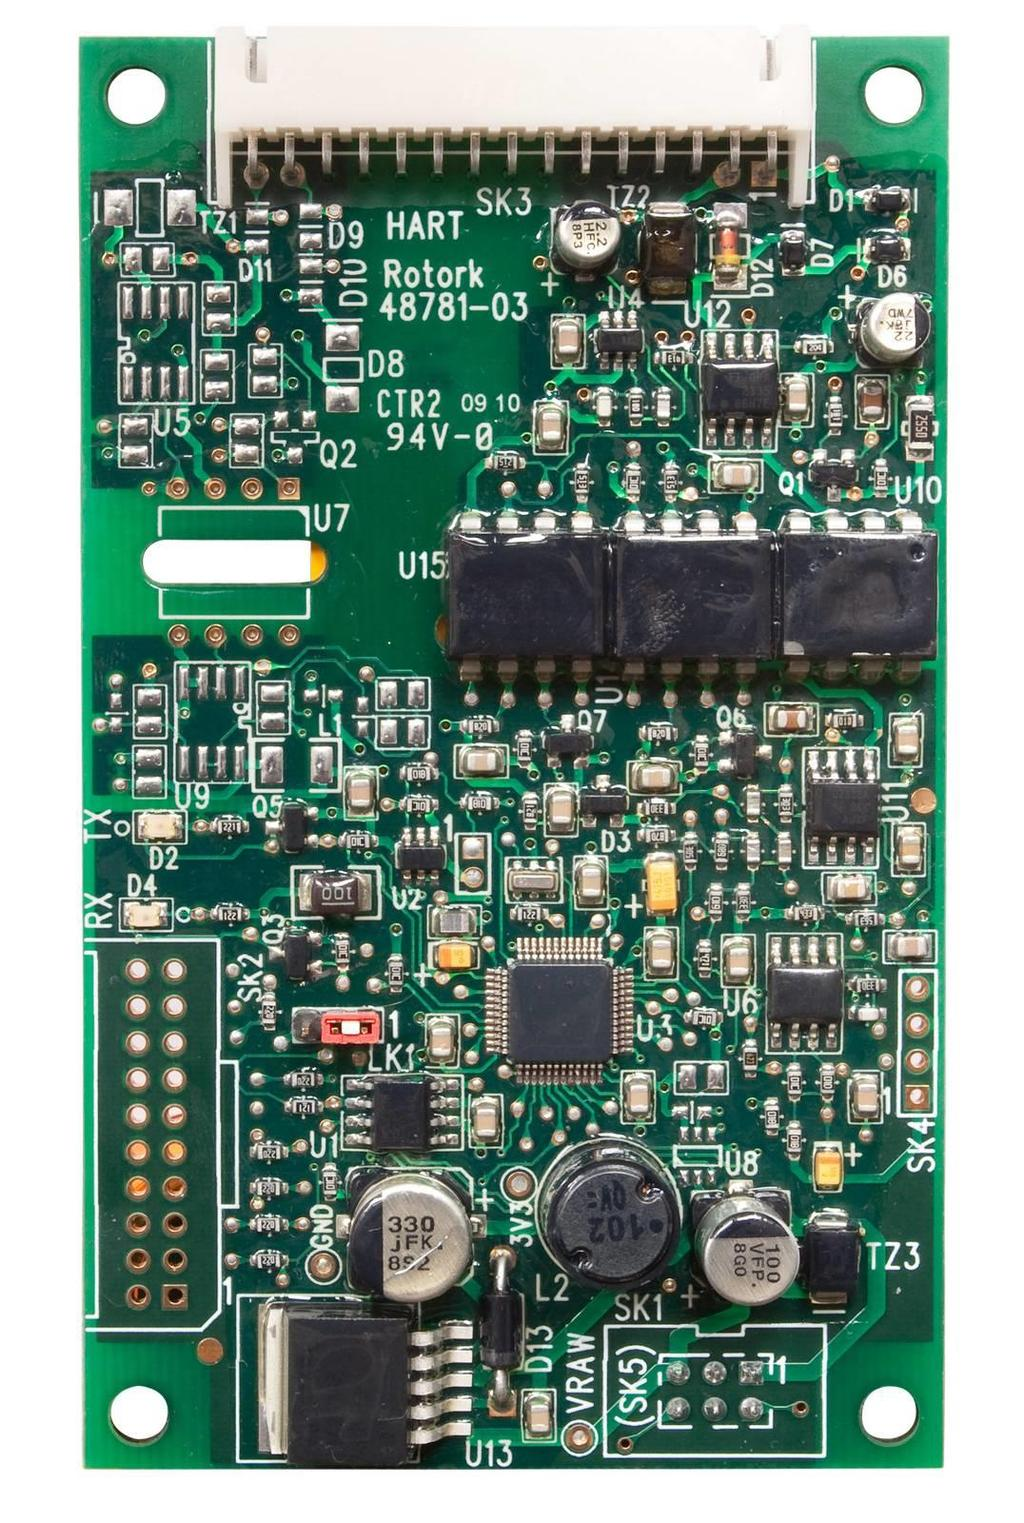 Hart Actuator Field Unit Technical Manual Iq Iqt 3 Rd Generation Dvc 2000 Positioner Wiring Diagram 22 Mechanical Properties The Hfu Board Is A Single Printed Circuit Which Fitted To